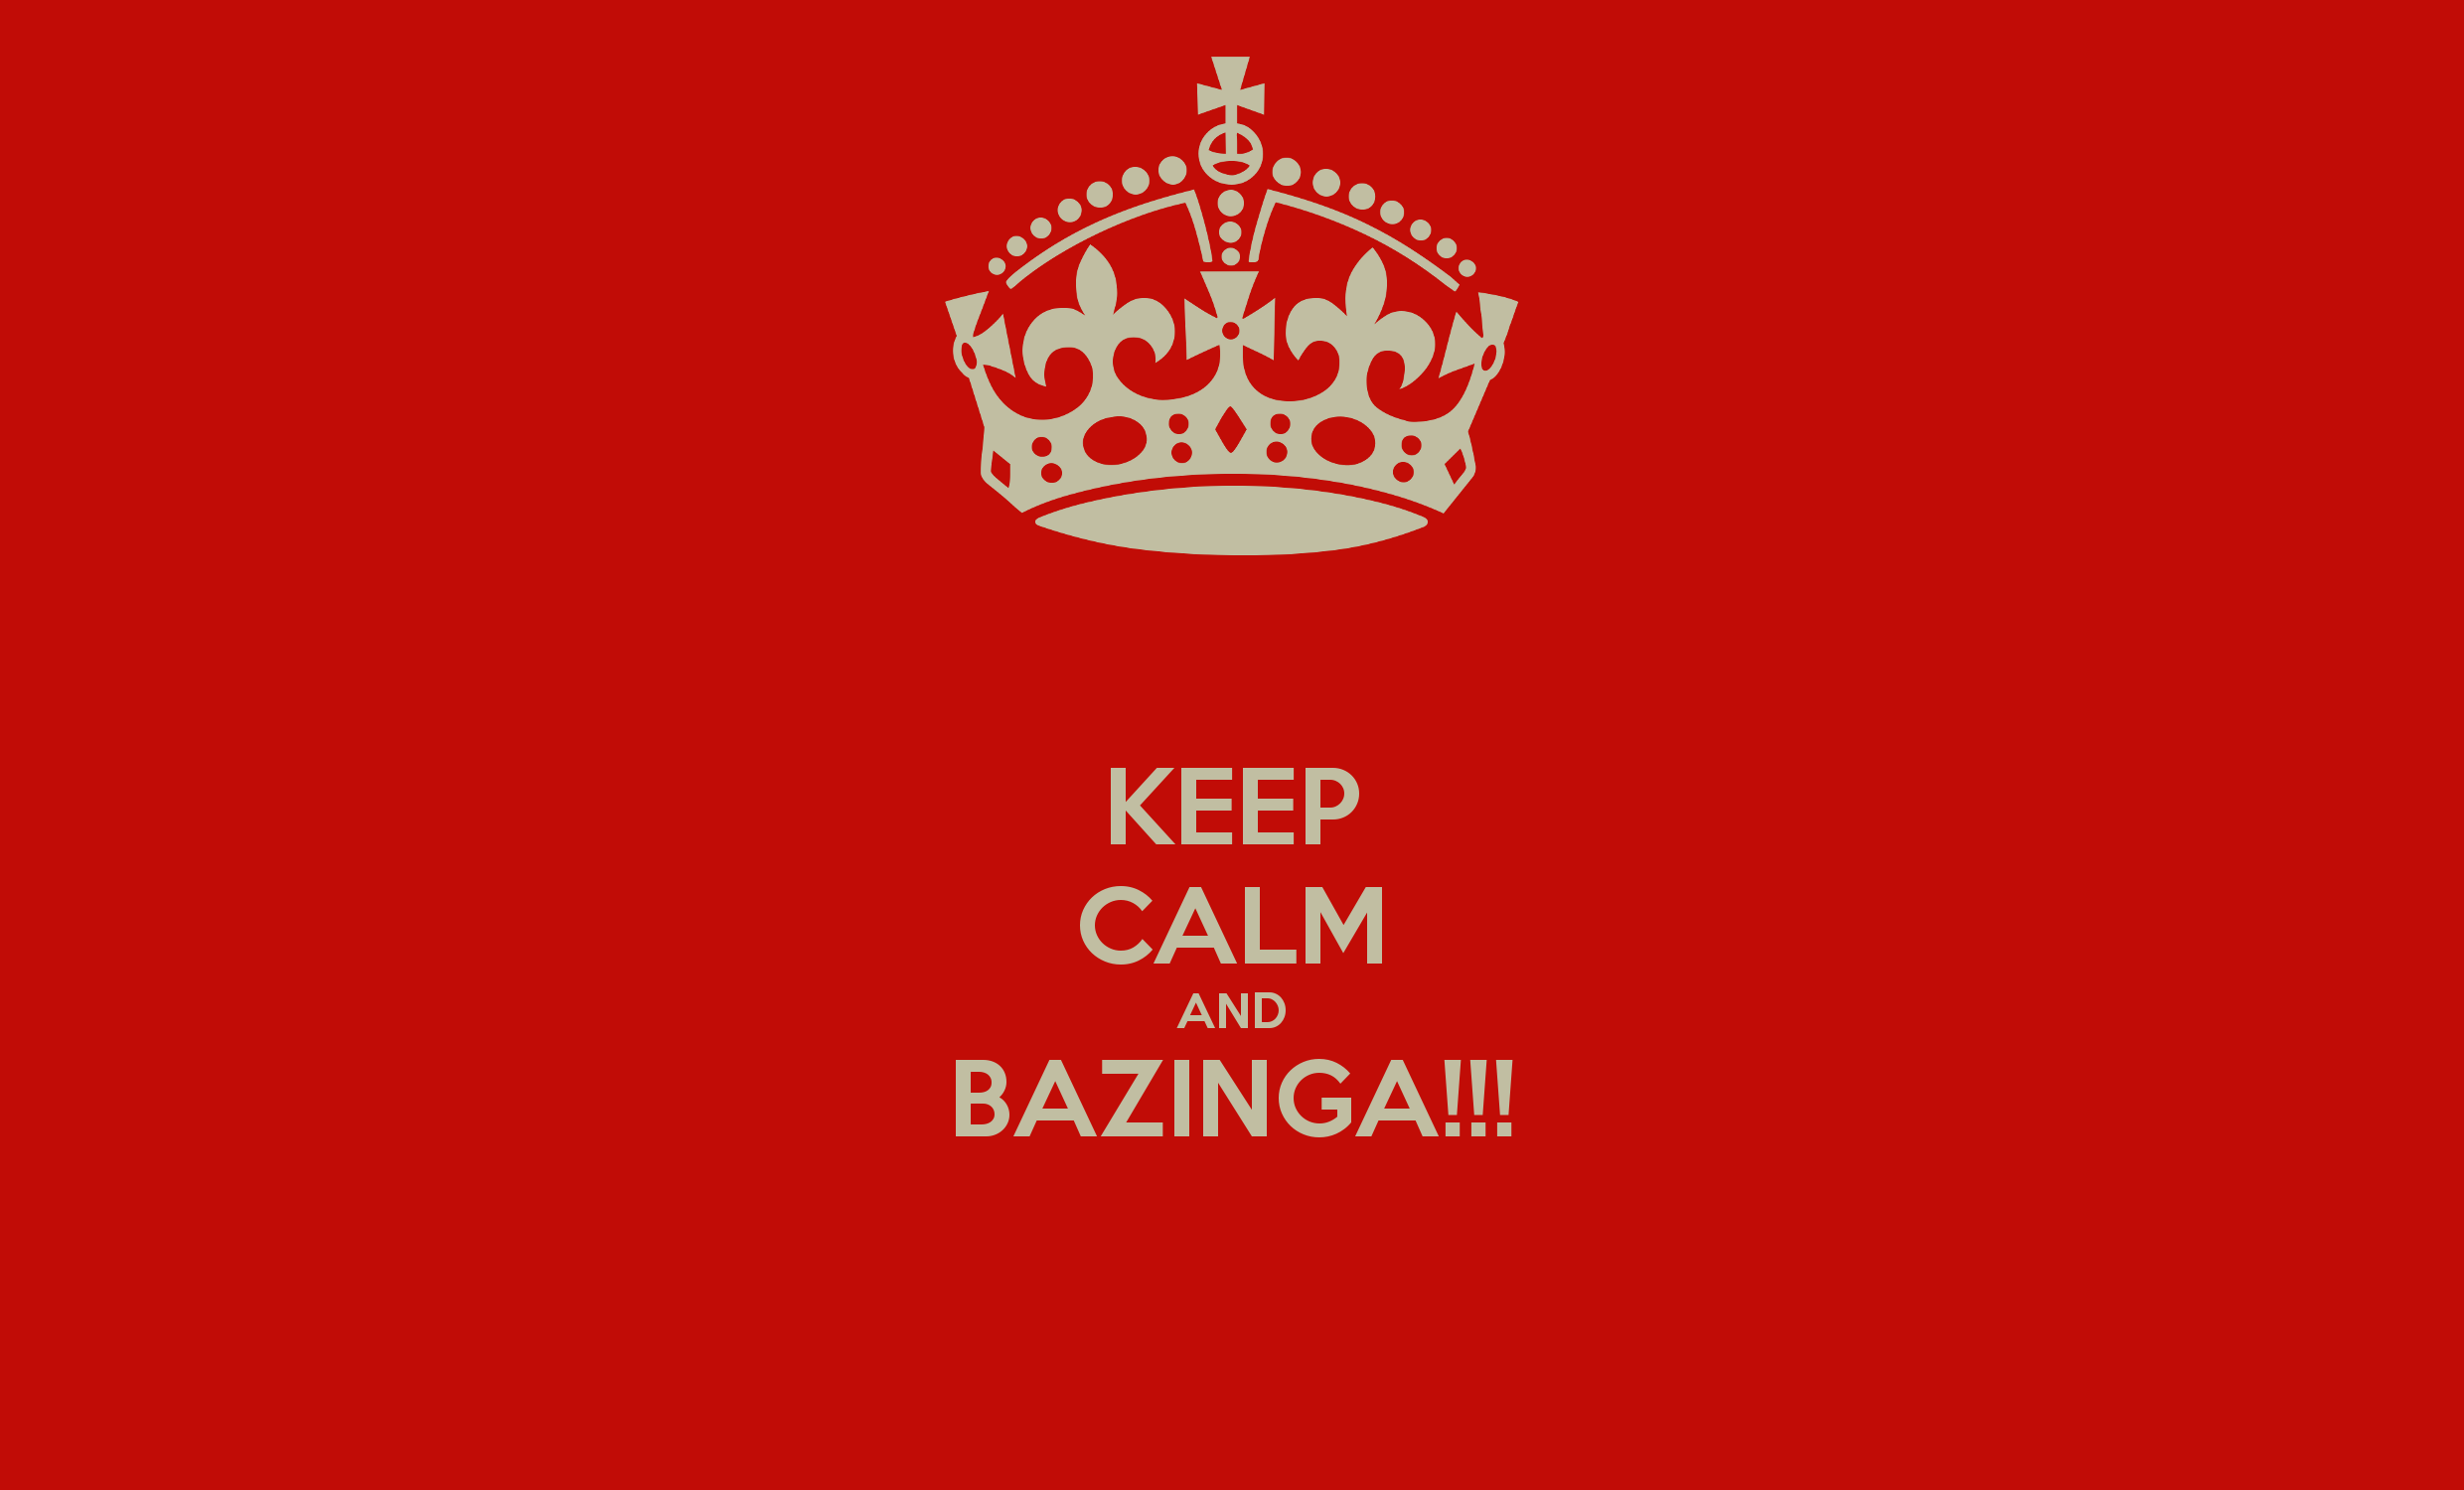 Deadpool Wallpaper For Iphone X Keep Calm And Bazinga Full Hd Wallpaper And Background